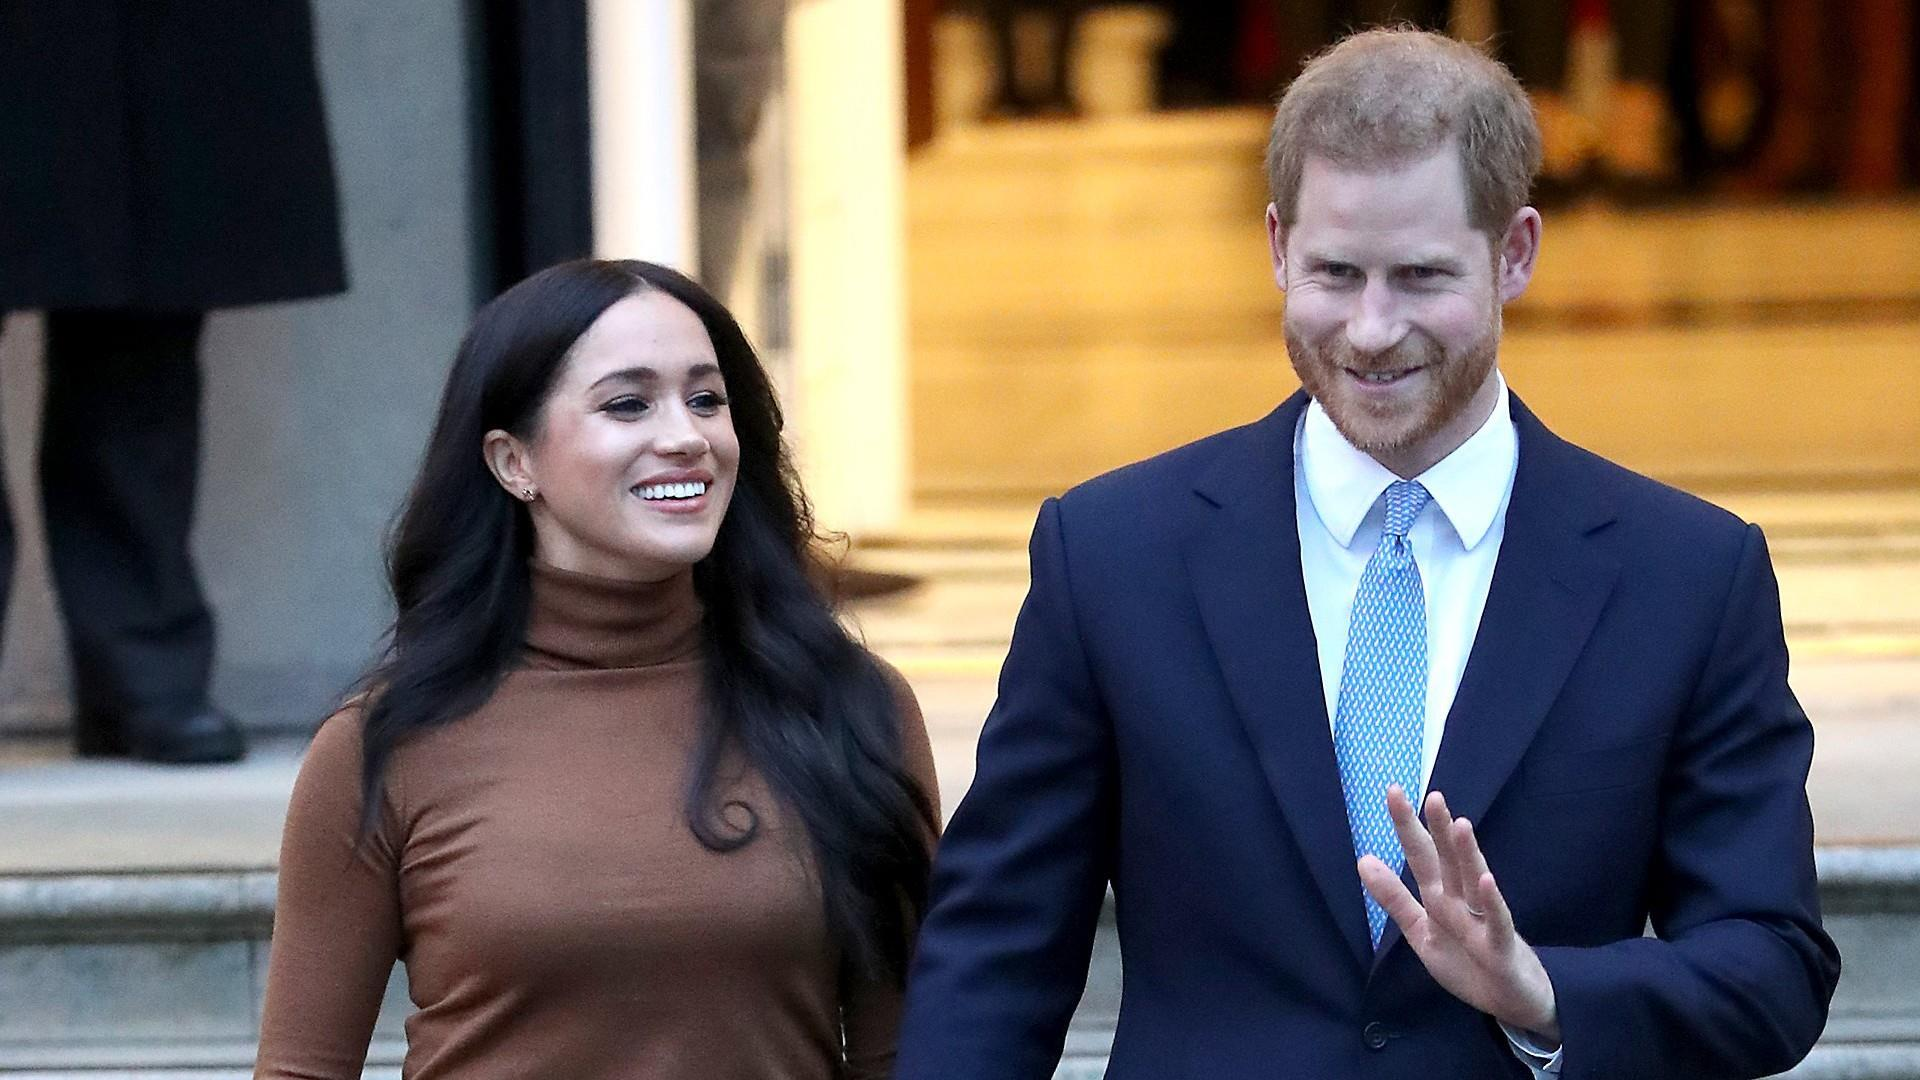 Simmons on Harry and Meghan's departure: 'Royal family will be poorer for it'